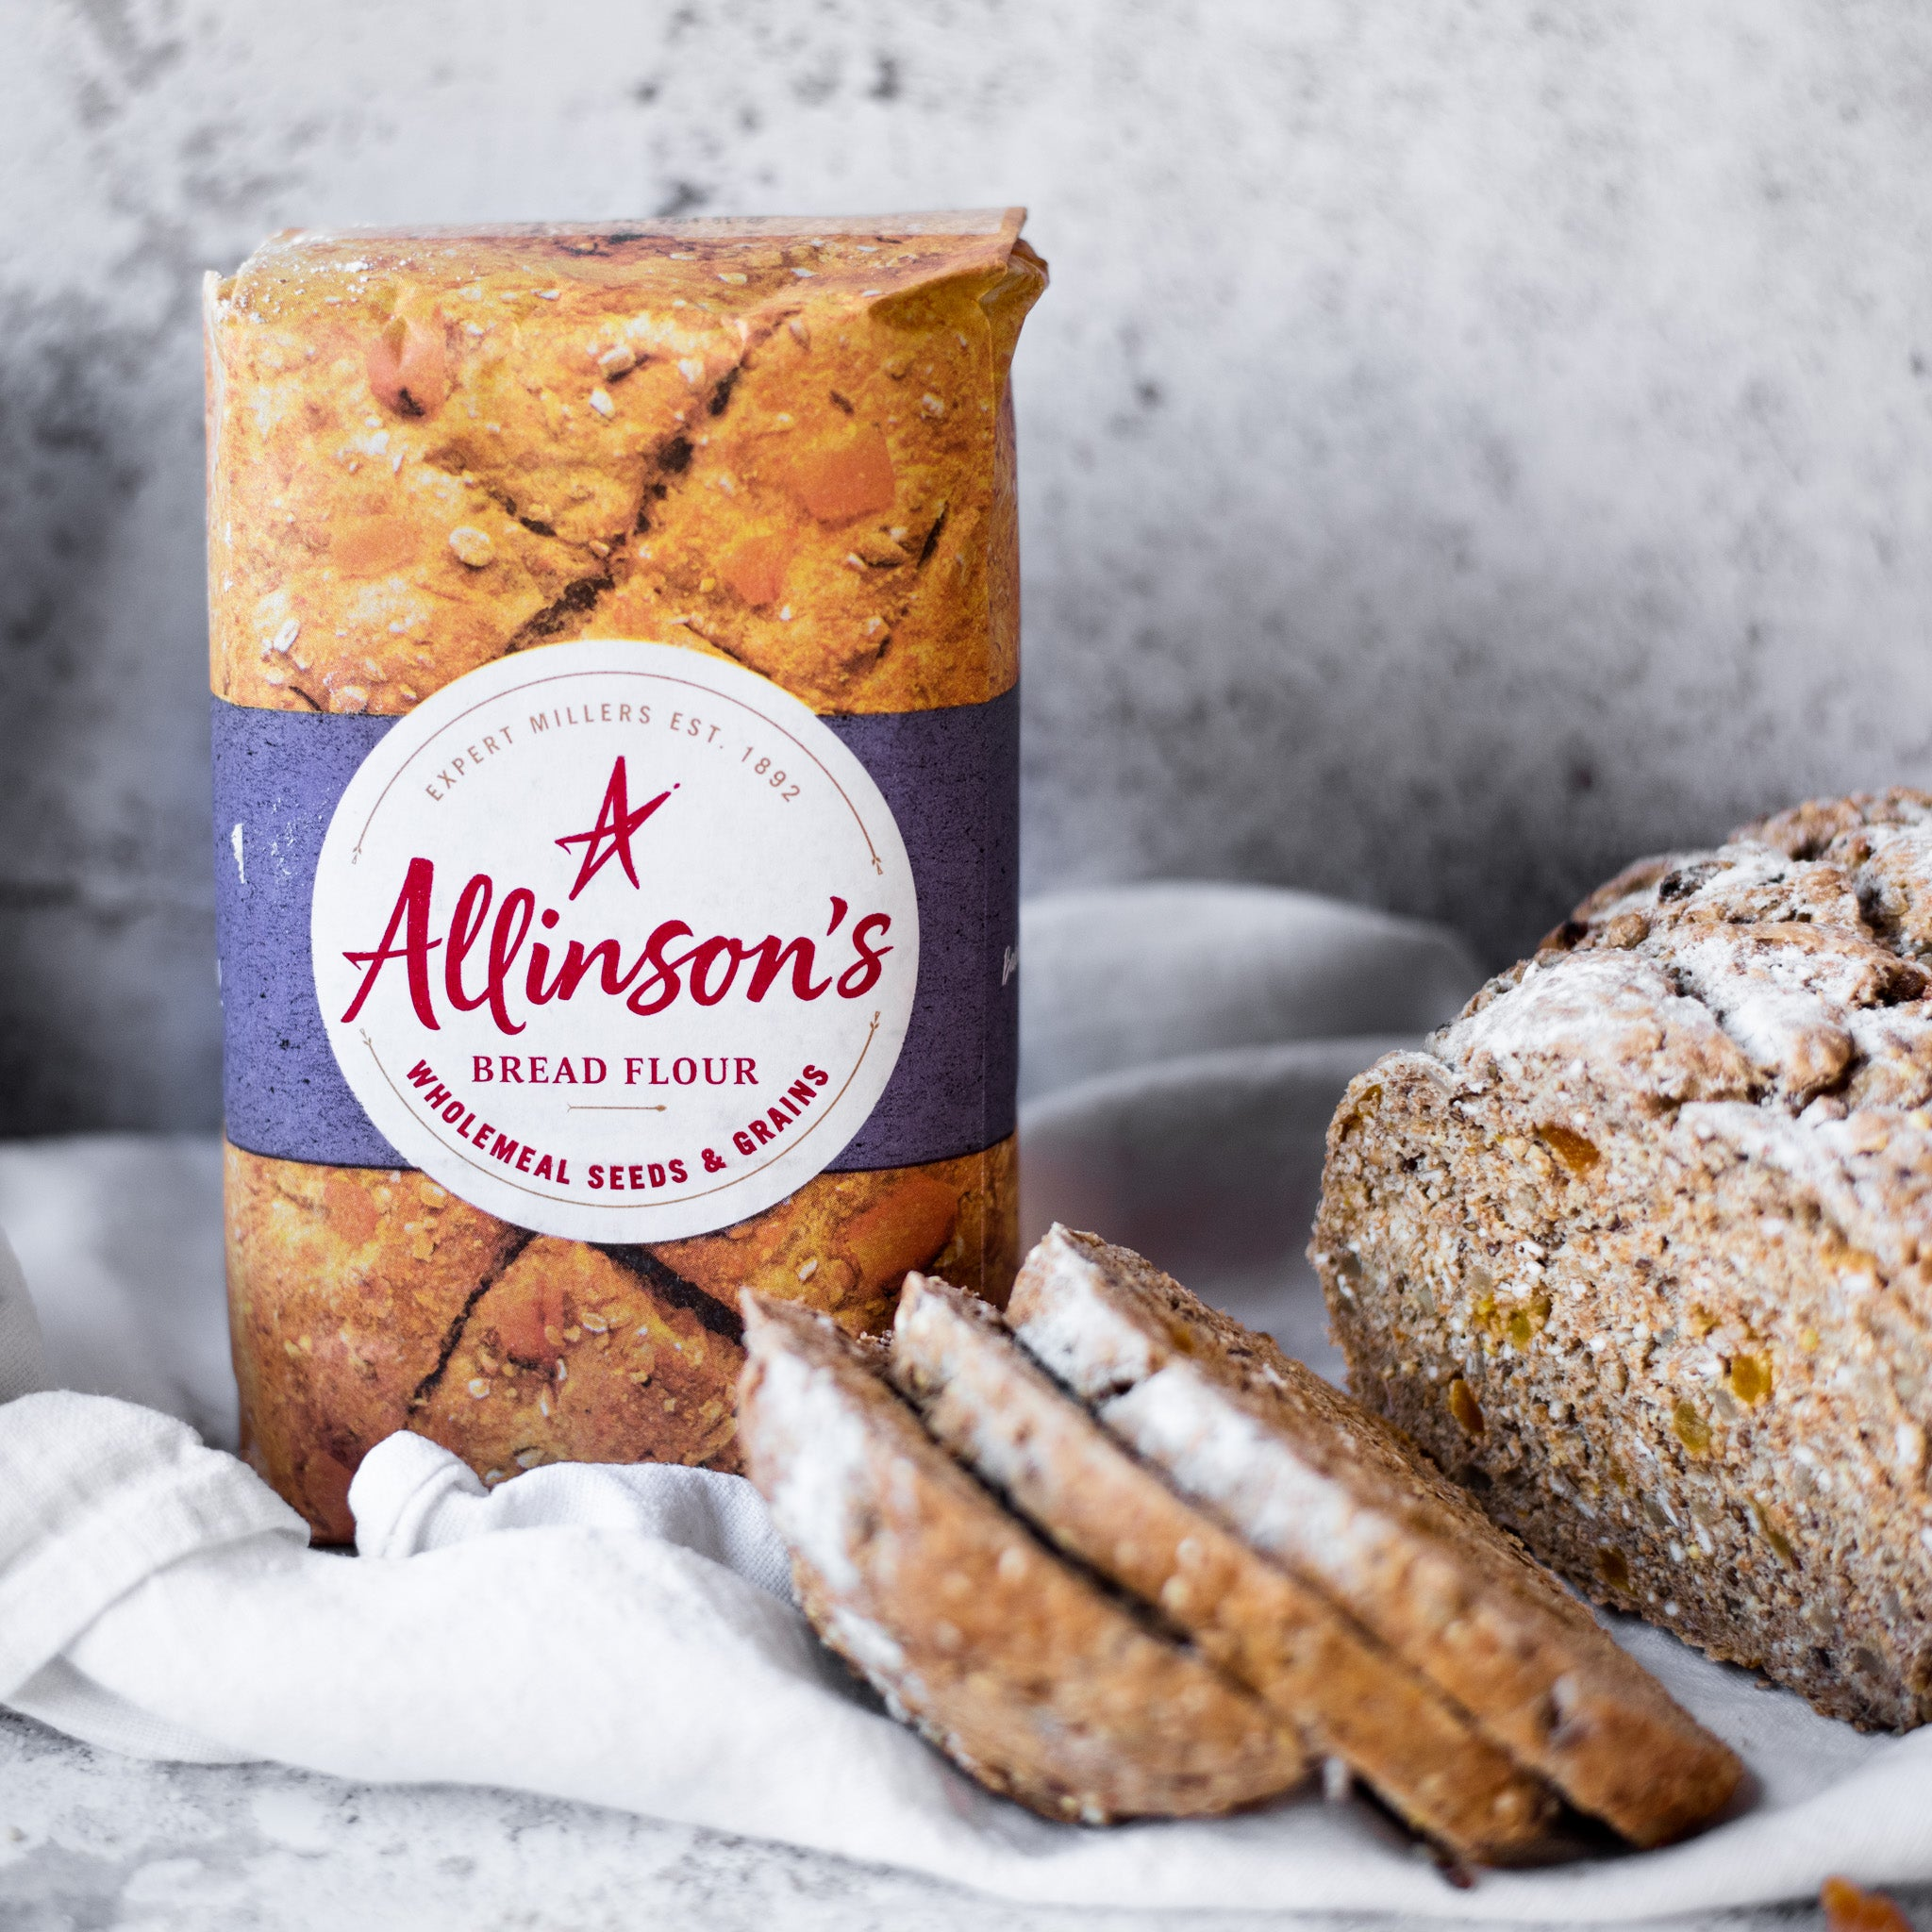 Wholemeal-Seed-Grain-Apricot-Loaf-by-Allinson-s-(9).jpg